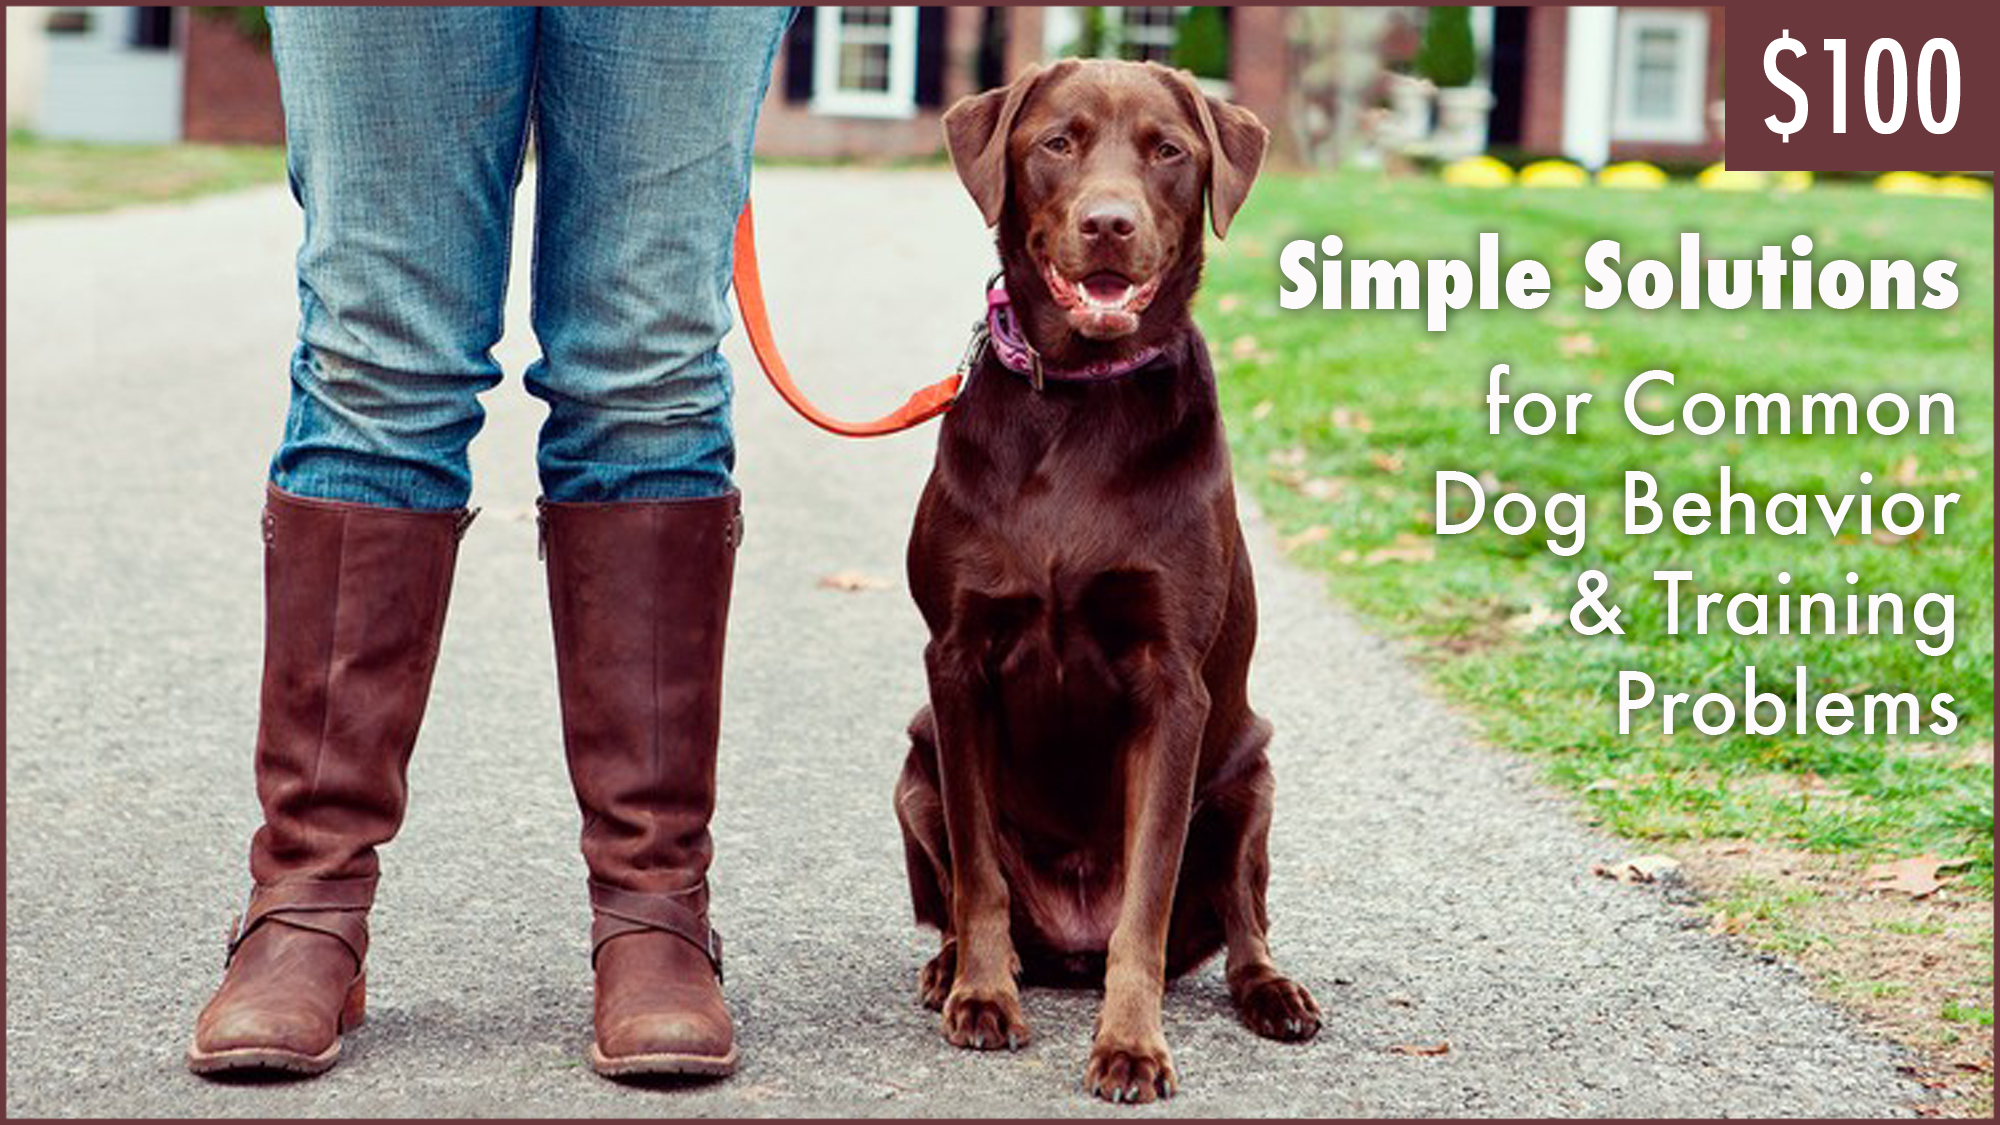 Simple Solutions for Common Dog Behavior & Training Problems